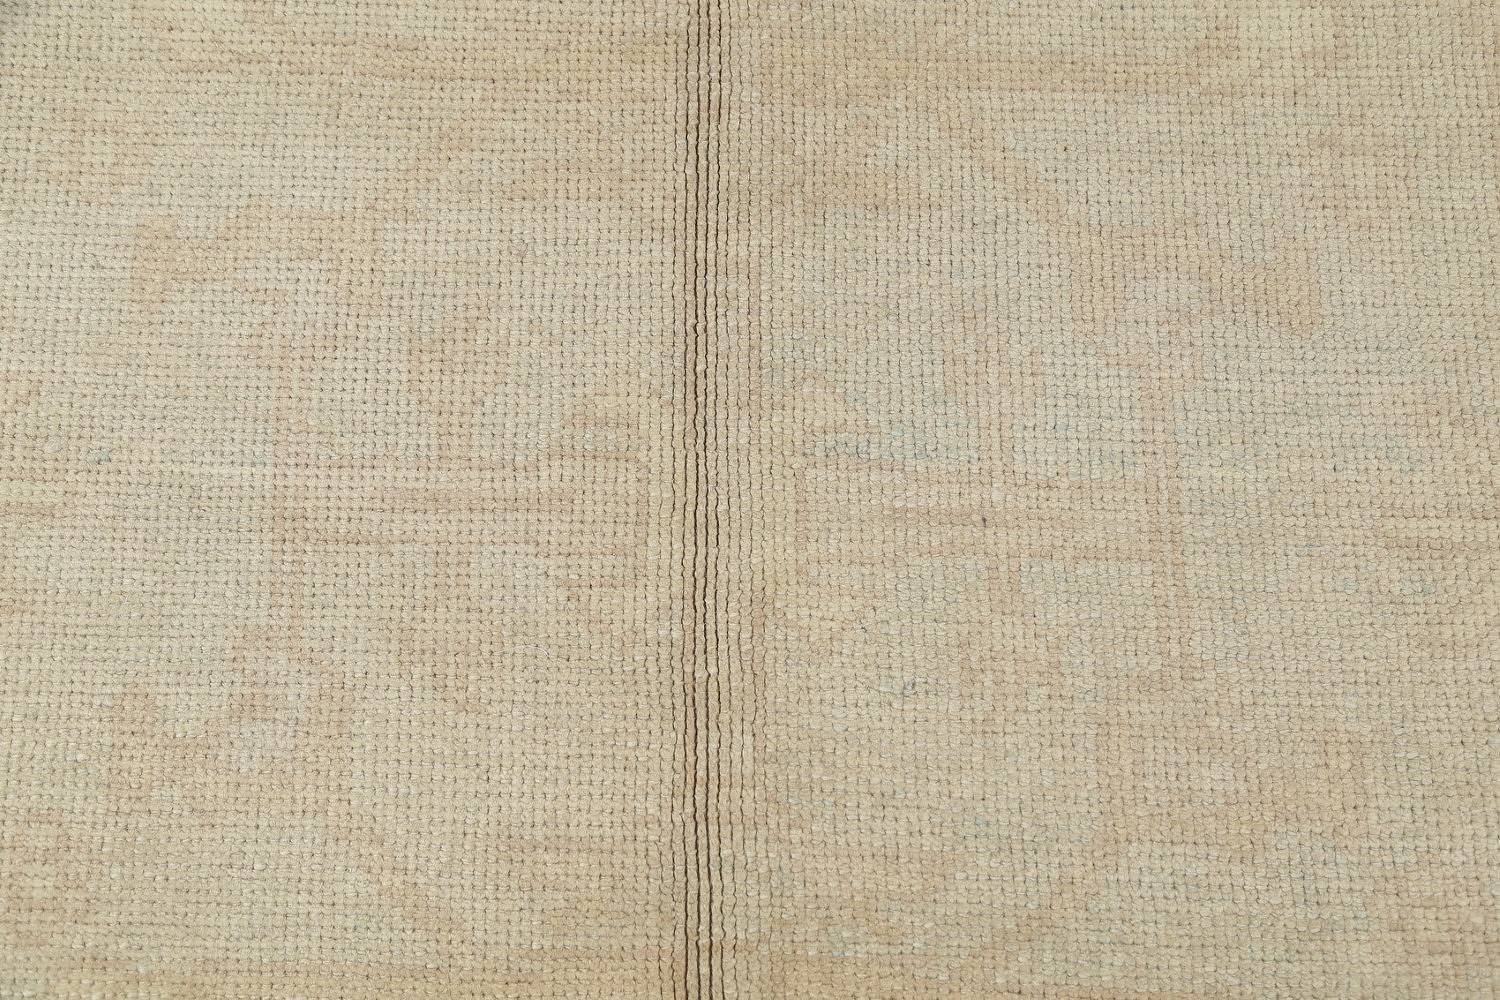 Vegetable Dye Muted Pale Blue Oushak Turkish Hand-Knotted Runner Rug 7x17 image 8